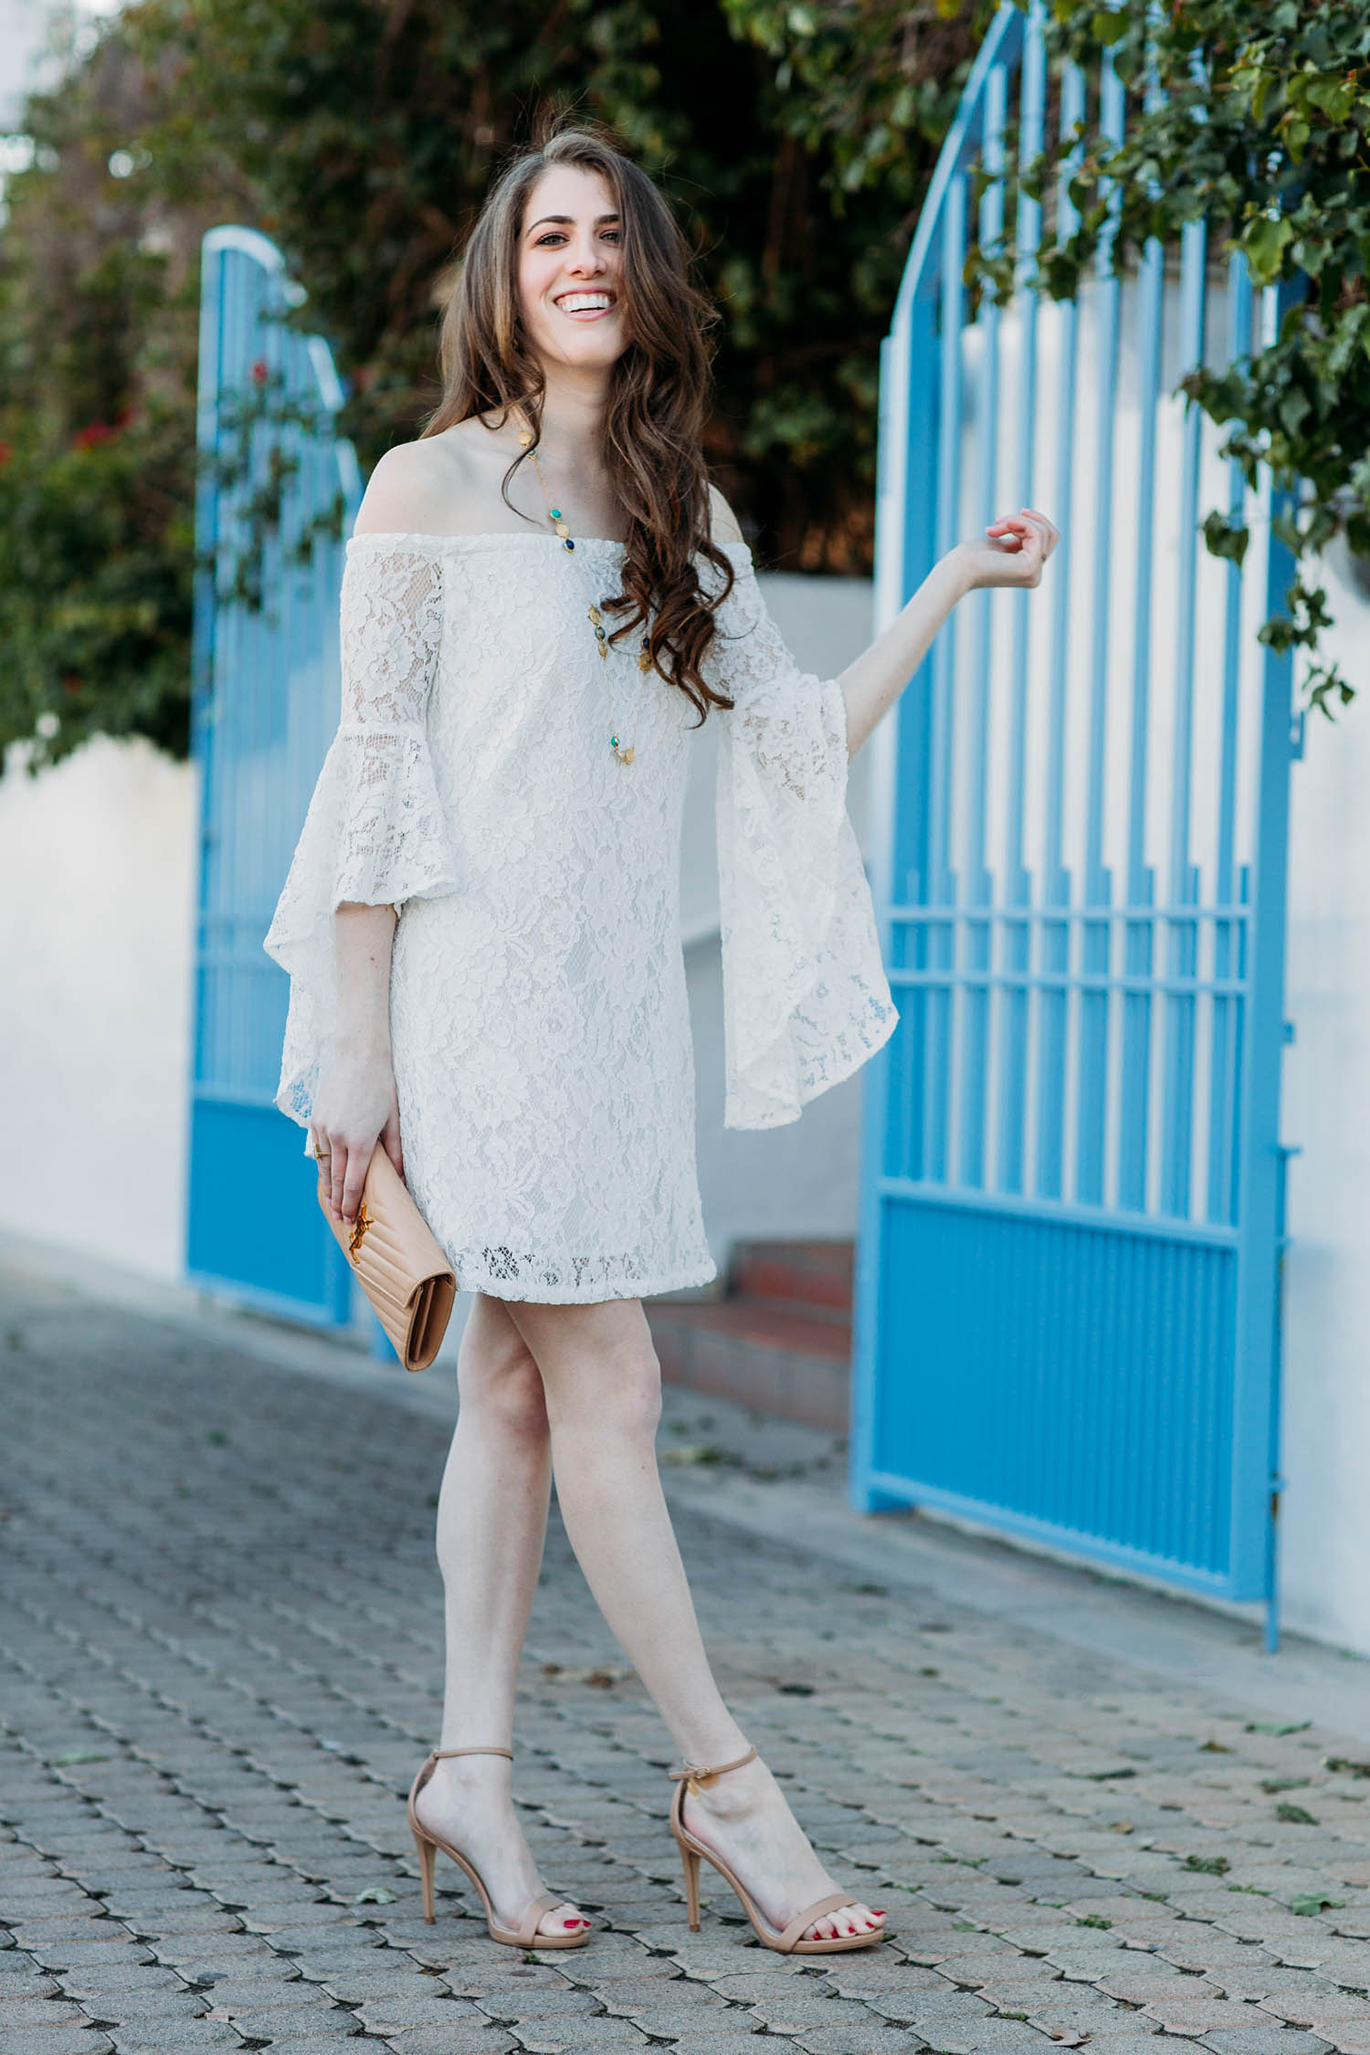 Off the shoulder white lace dress